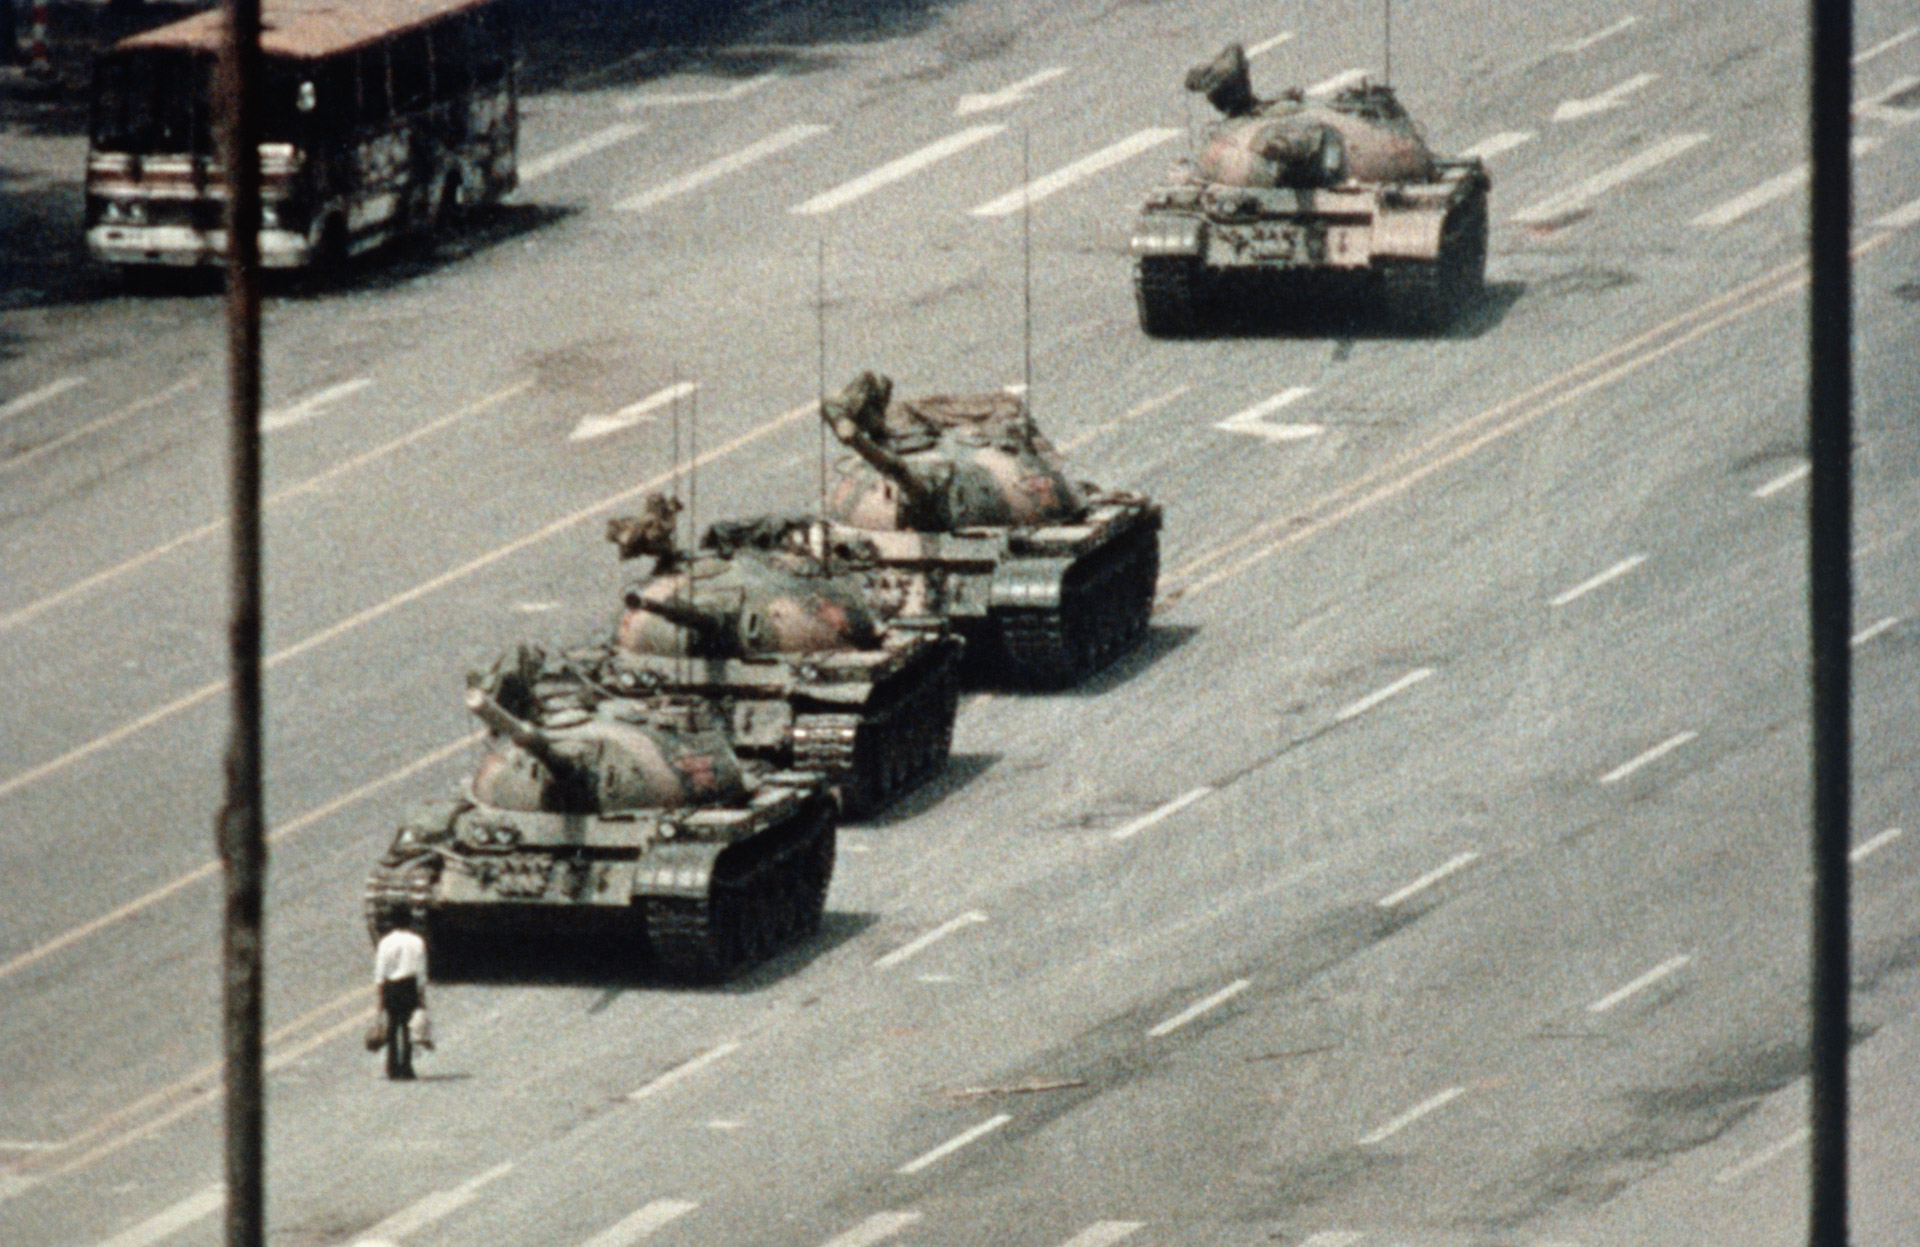 savoirs.rfi.fr_sites_default_files_medias_images_vignettes_gettyimages-517198274_china_tiananmen-tank-man_1920px_02.jpg